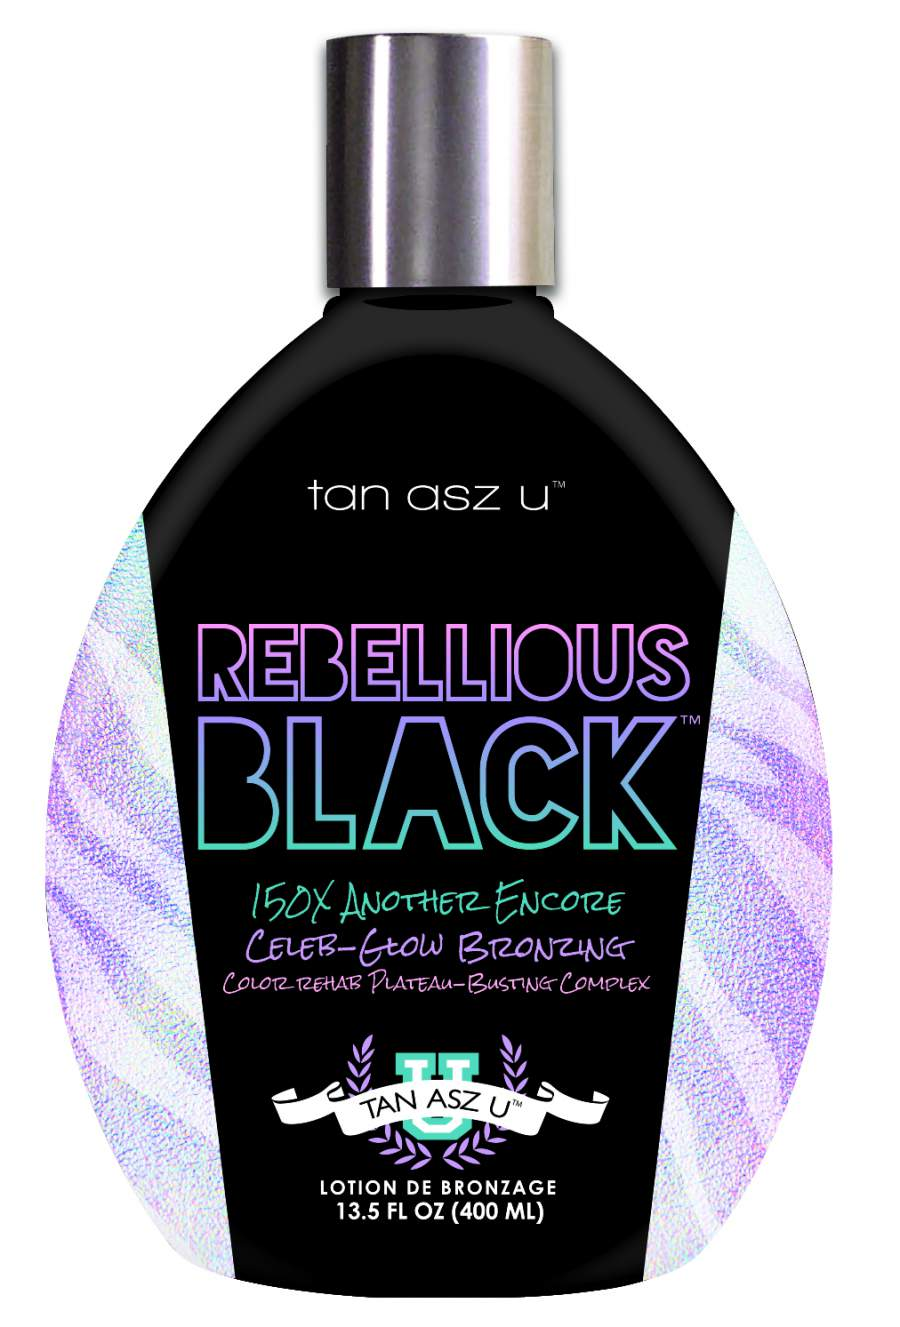 REBELLIOUS BLACK 150x (400ml)